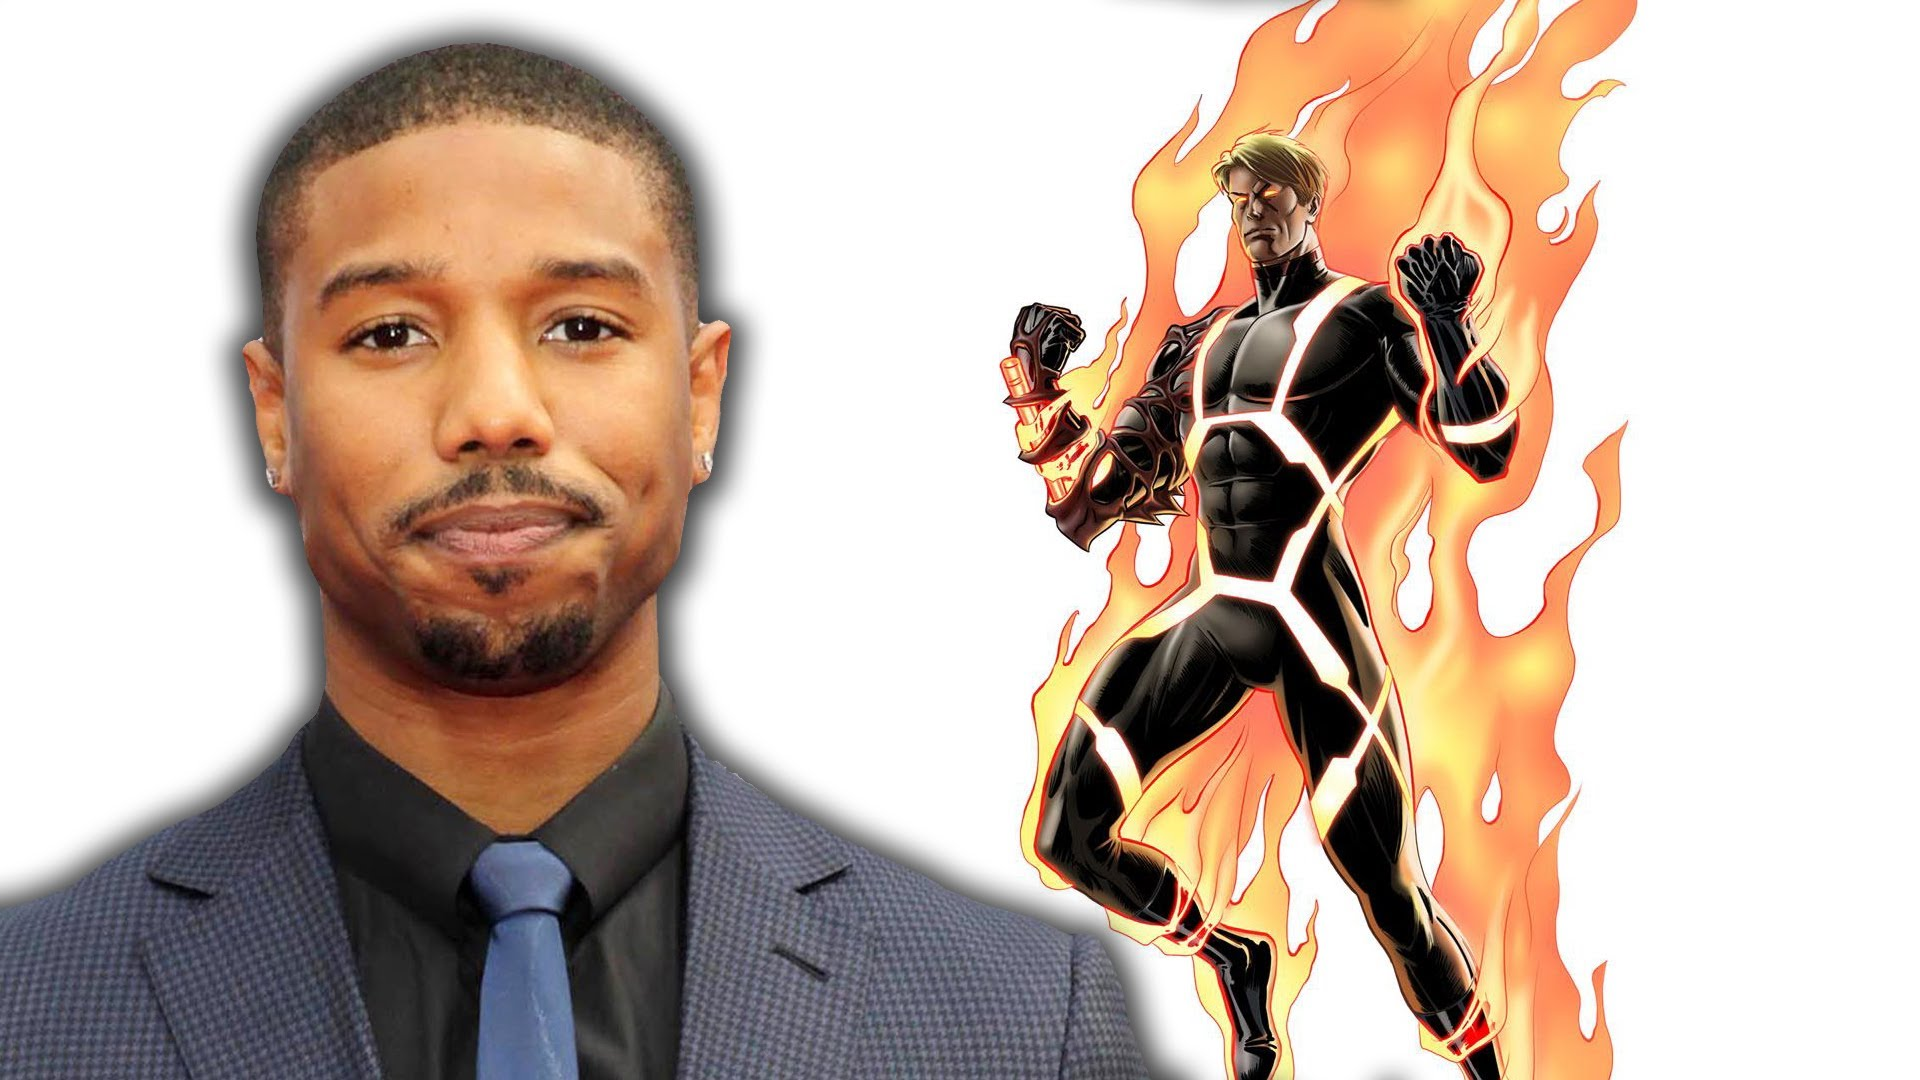 Michael B Jordan Wallpapers High Resolution And Quality Download